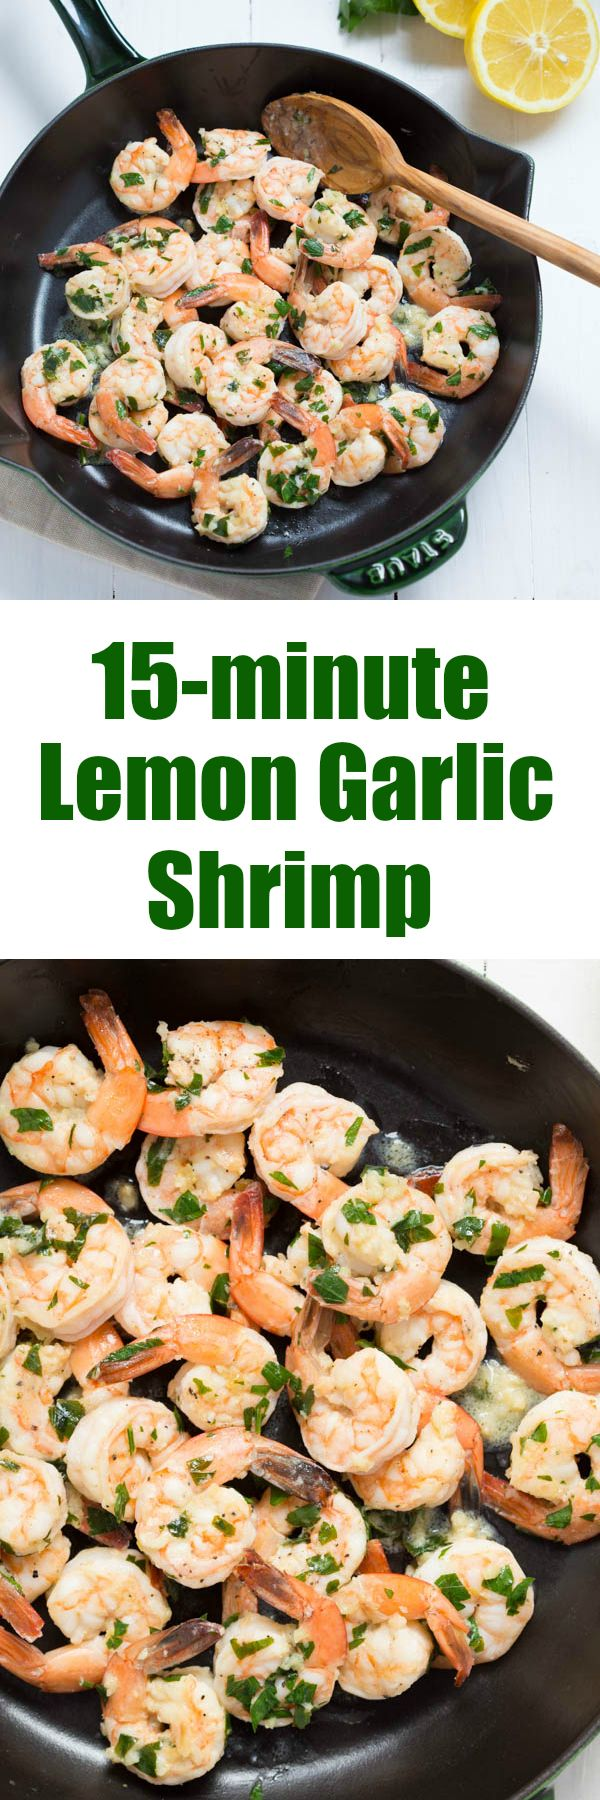 15-minute Lemon Garlic Shirmp - requires only a few simple ingredients to create a delicious meal!